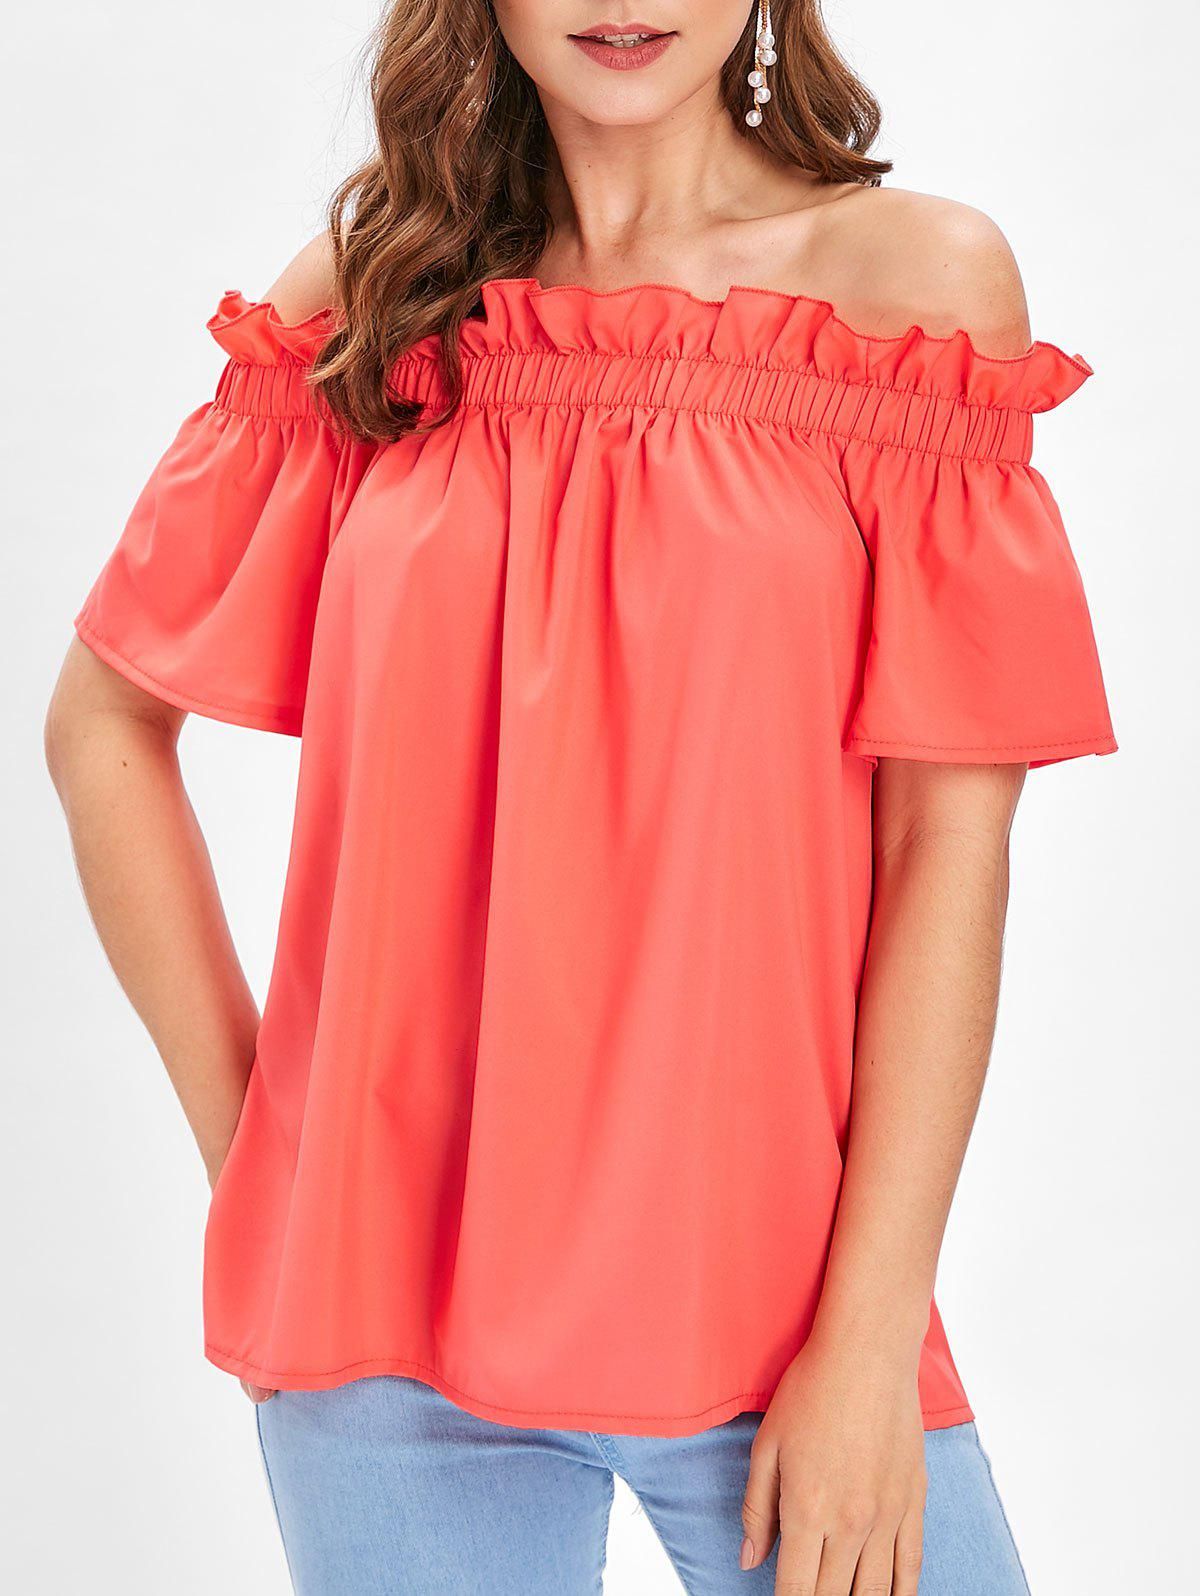 24009c0dbd130 39% OFF   2019 Ruffle OFF The Shoulder Solid Top